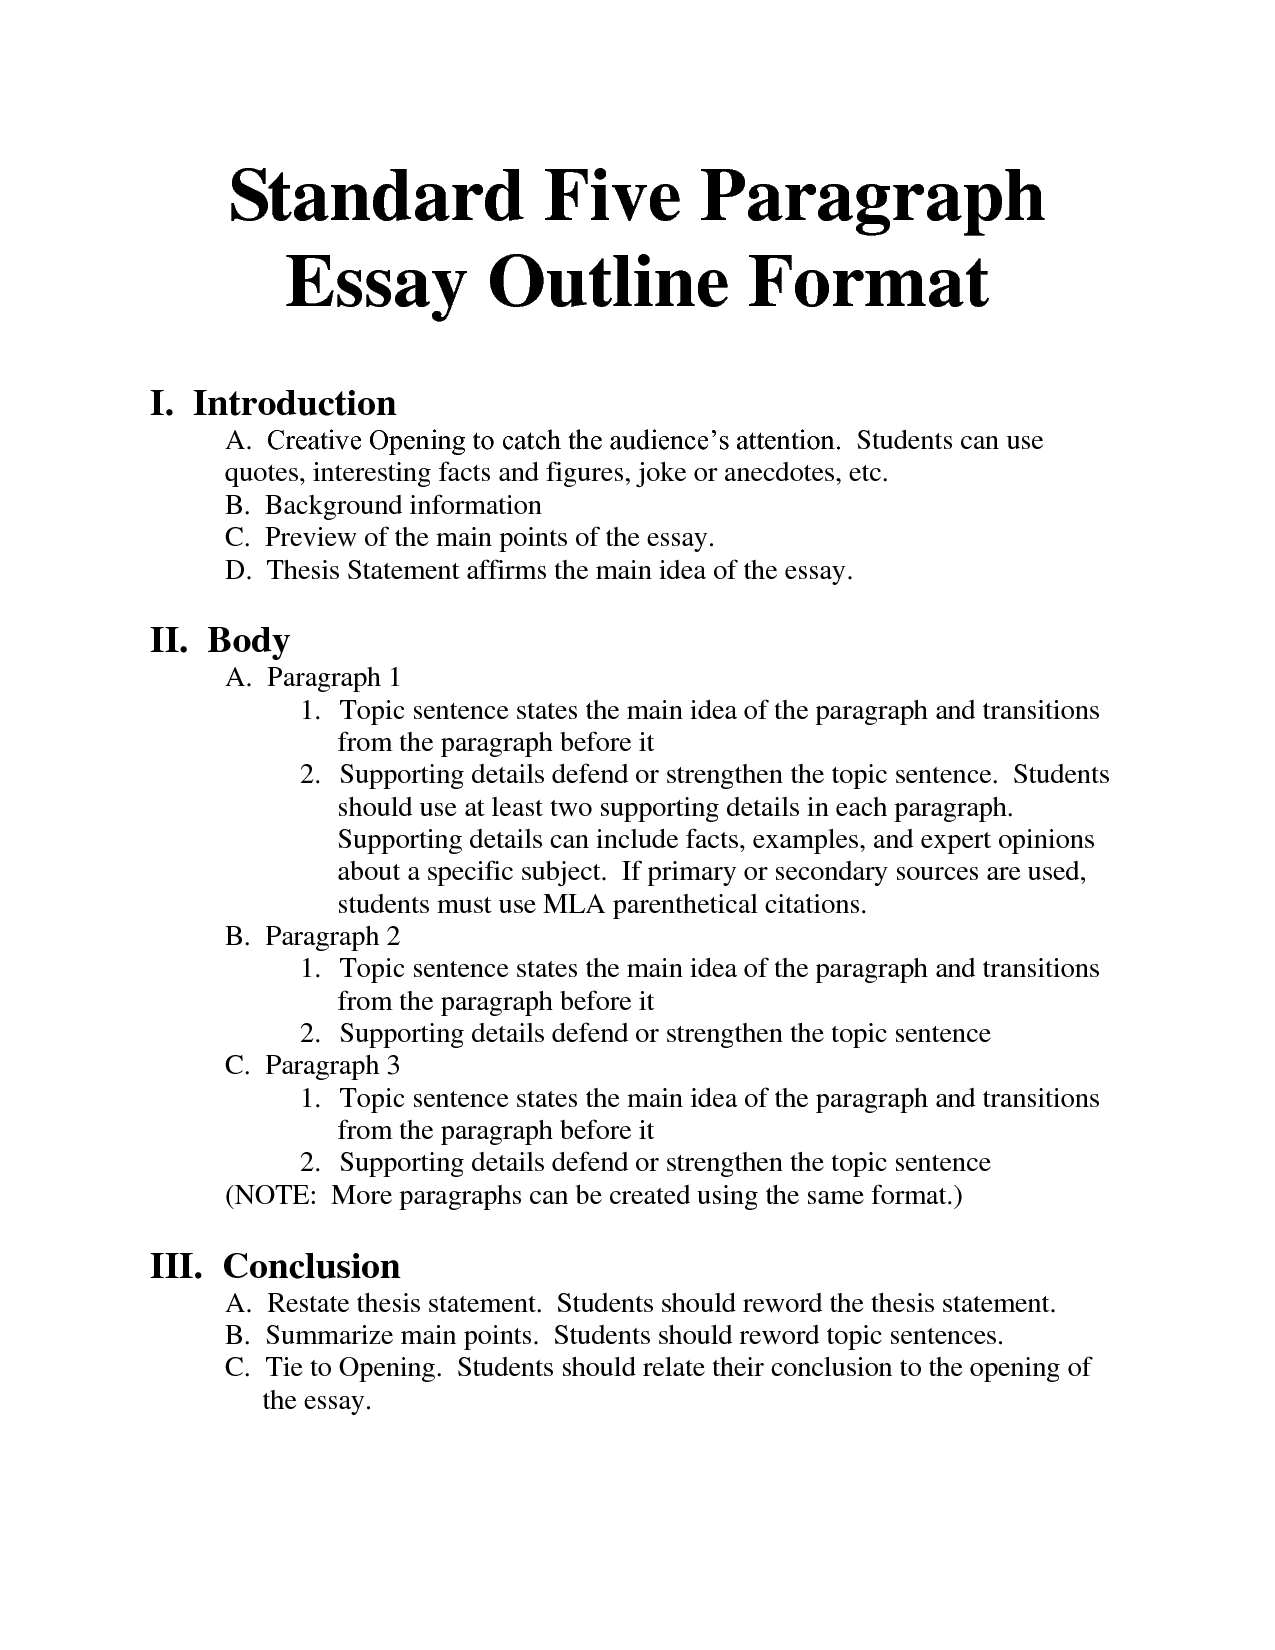 022 Easy Research Paper Topics Fantastic For High School Students Reddit To Write About Full